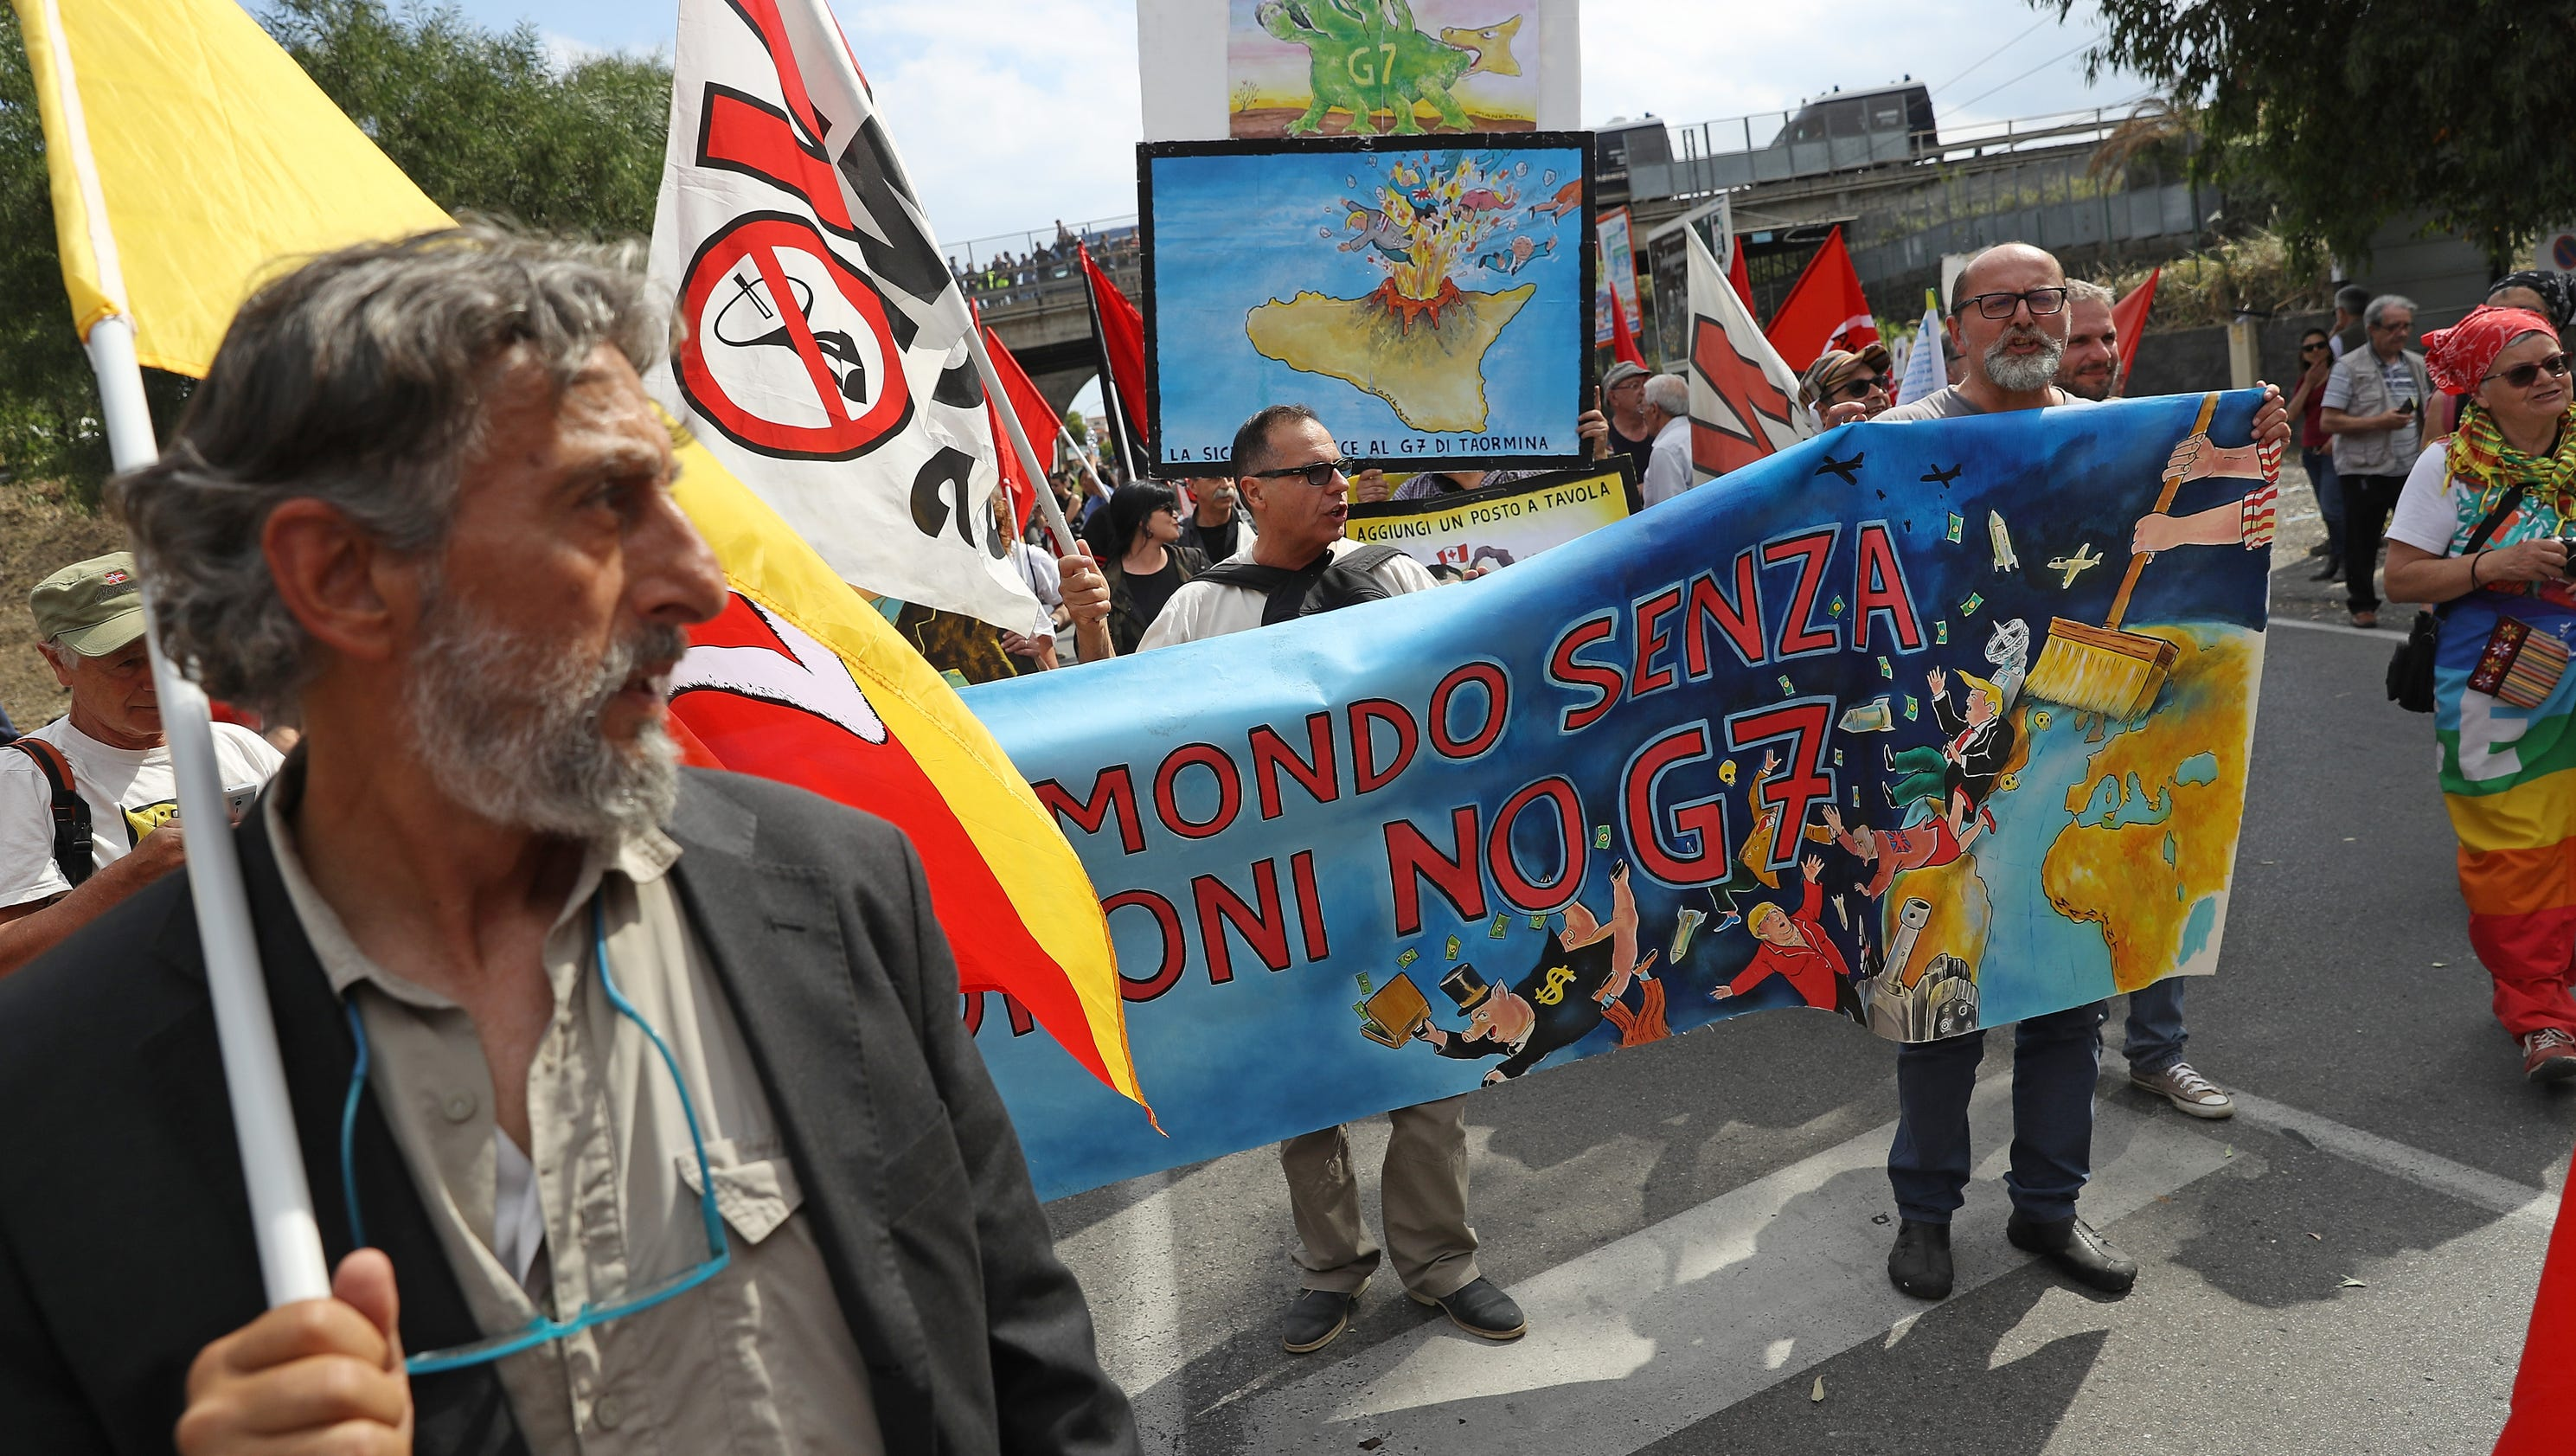 G-7 summit protesters rail against immigration, capitalism as leaders fly overhead